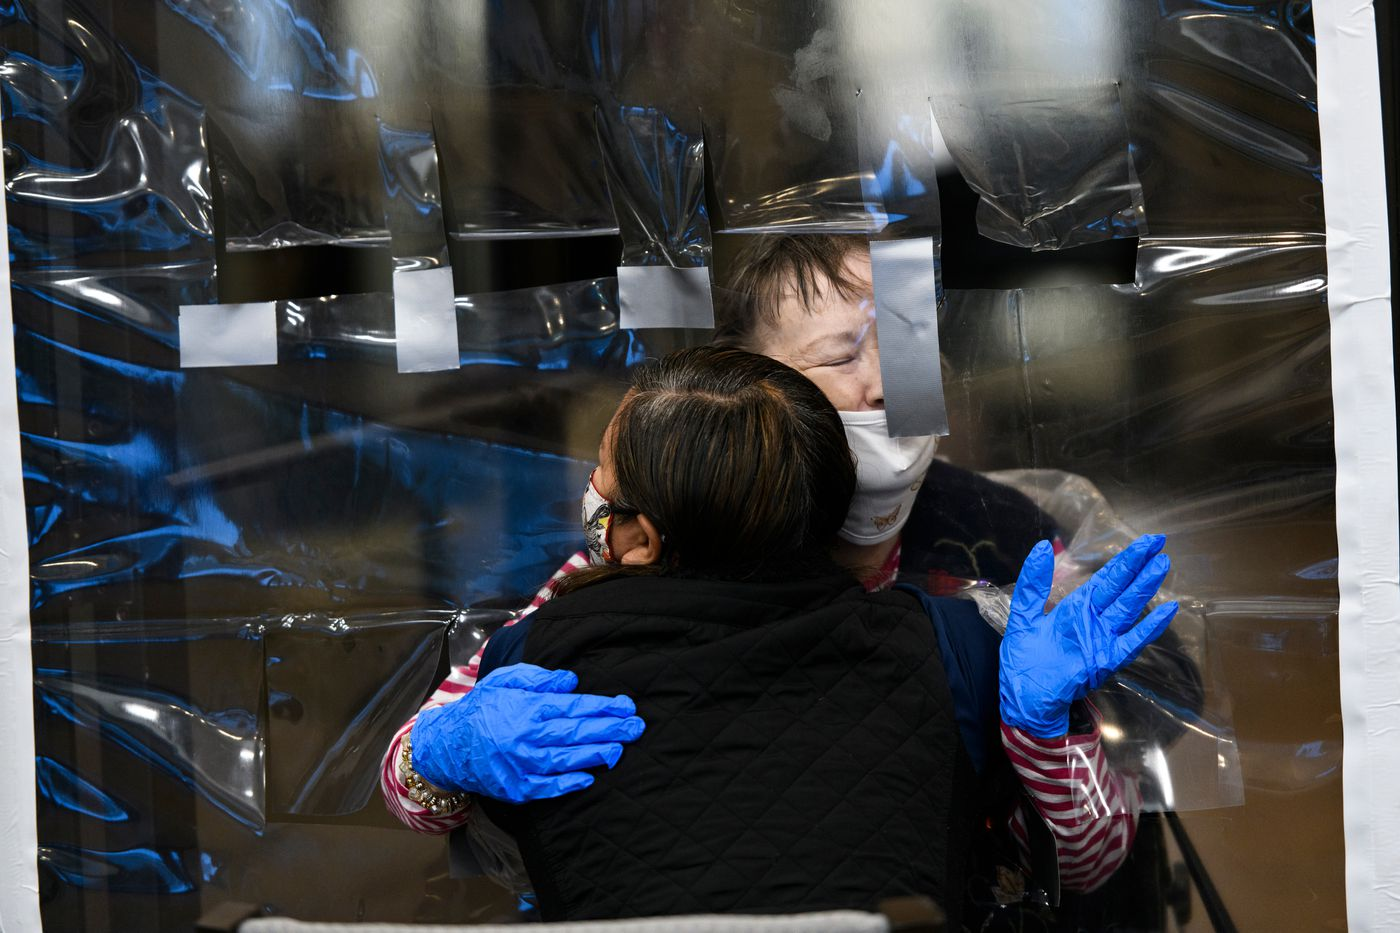 DECEMBER 2. Cordelia Scott, facing, hugs her daughter-in-law, Pheng Scott, through a sheet of plastic at Aspen Creek, an assisted living center. This was the second session of the 'hugging wall ' at Aspen Creek, designed to keep its senior population safe from COVID-19 but in contact with family members. (Marc Lester / ADN)